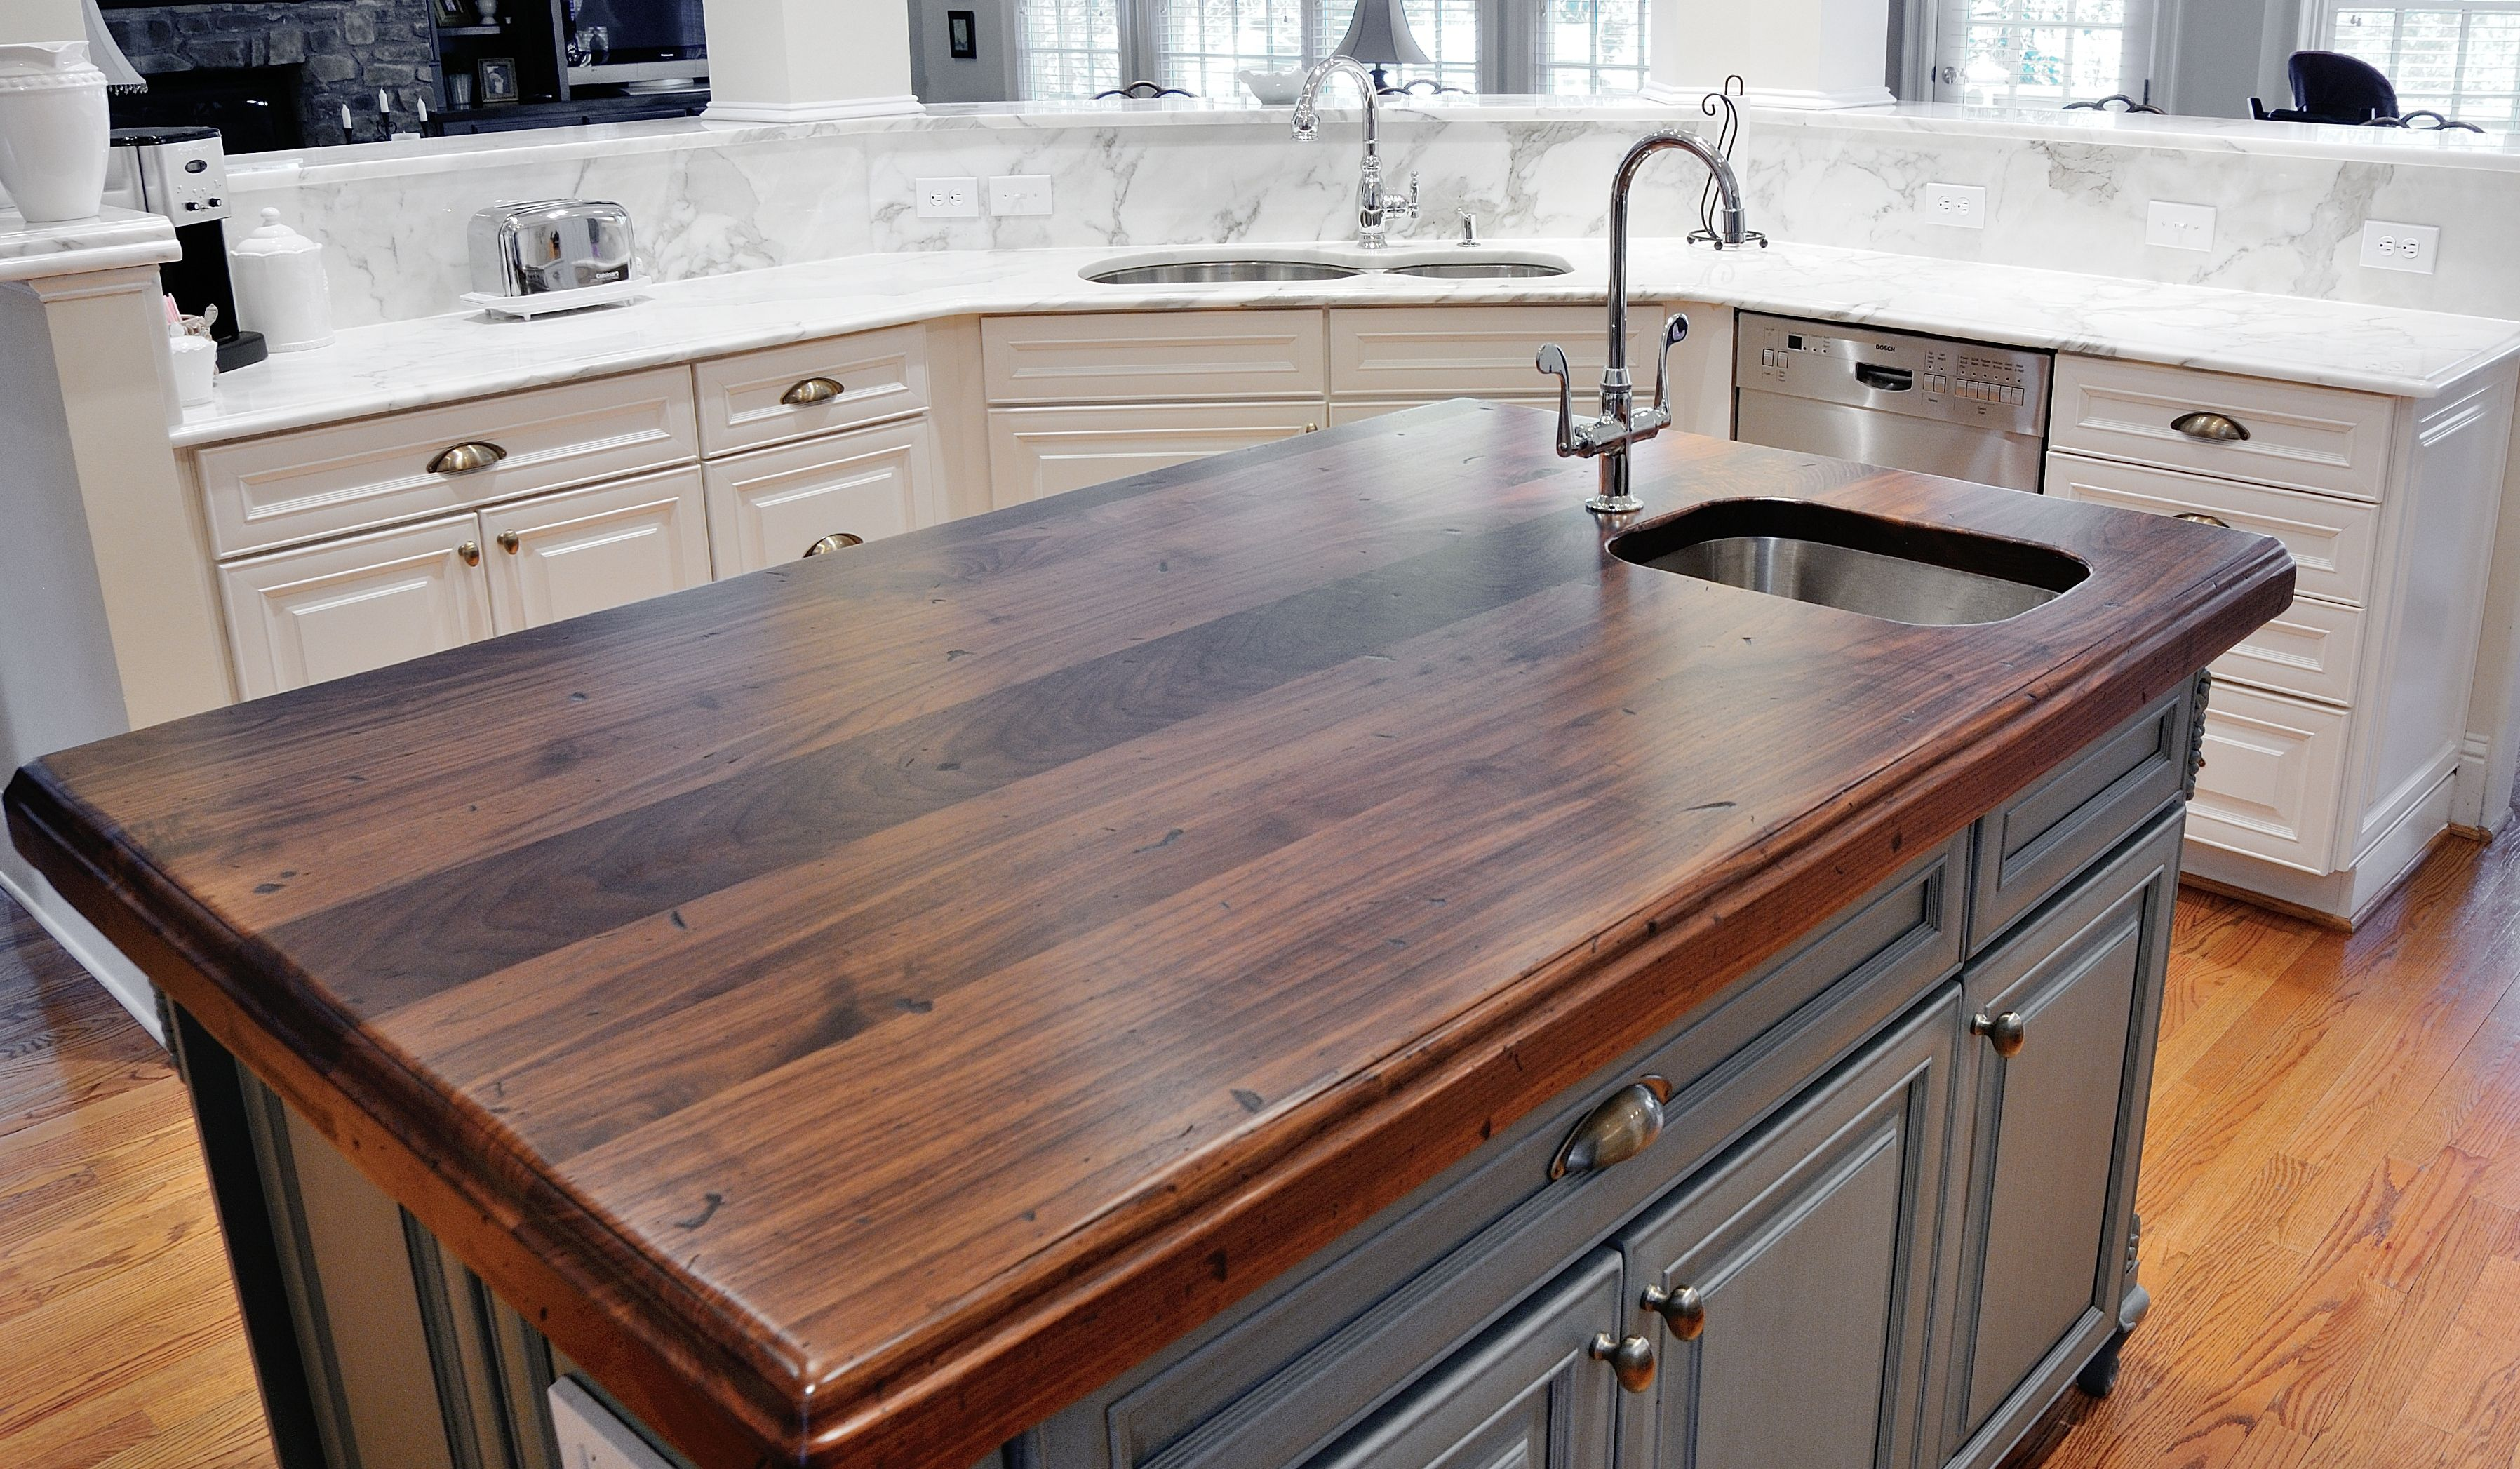 Tung Oil For Butcher Block Countertops Distressed Black Walnut Heritage Wood By Artisan Stone